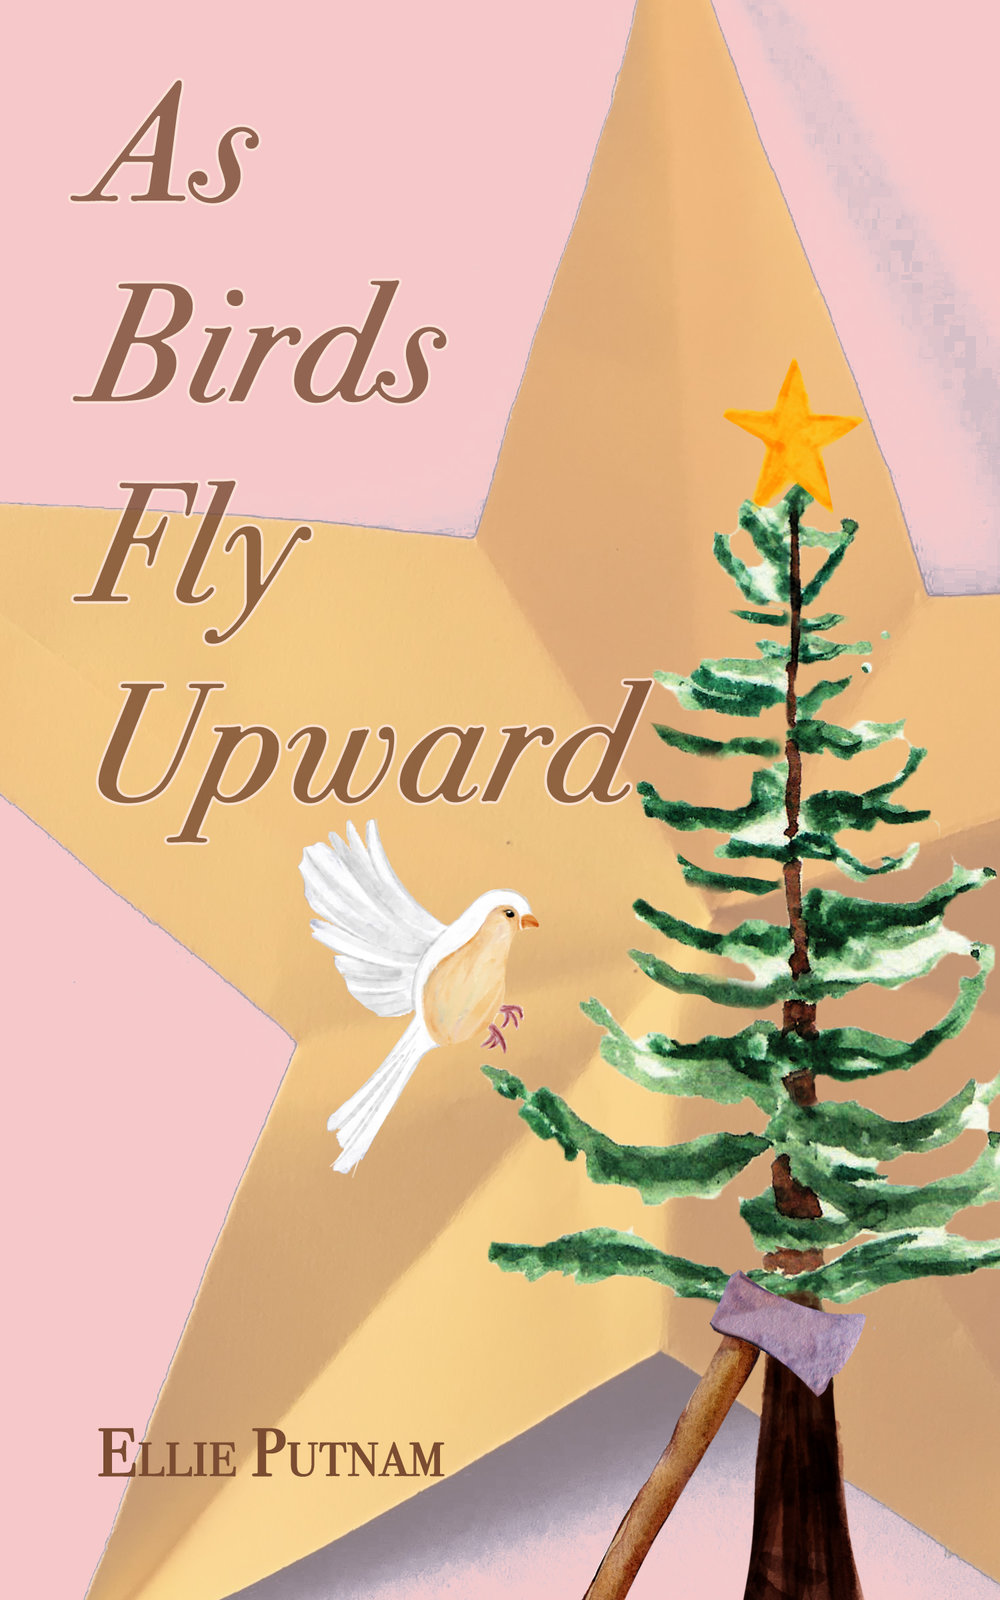 Thank you for reading. - As Birds Fly Upward is Ellie Putnam's debut novel.